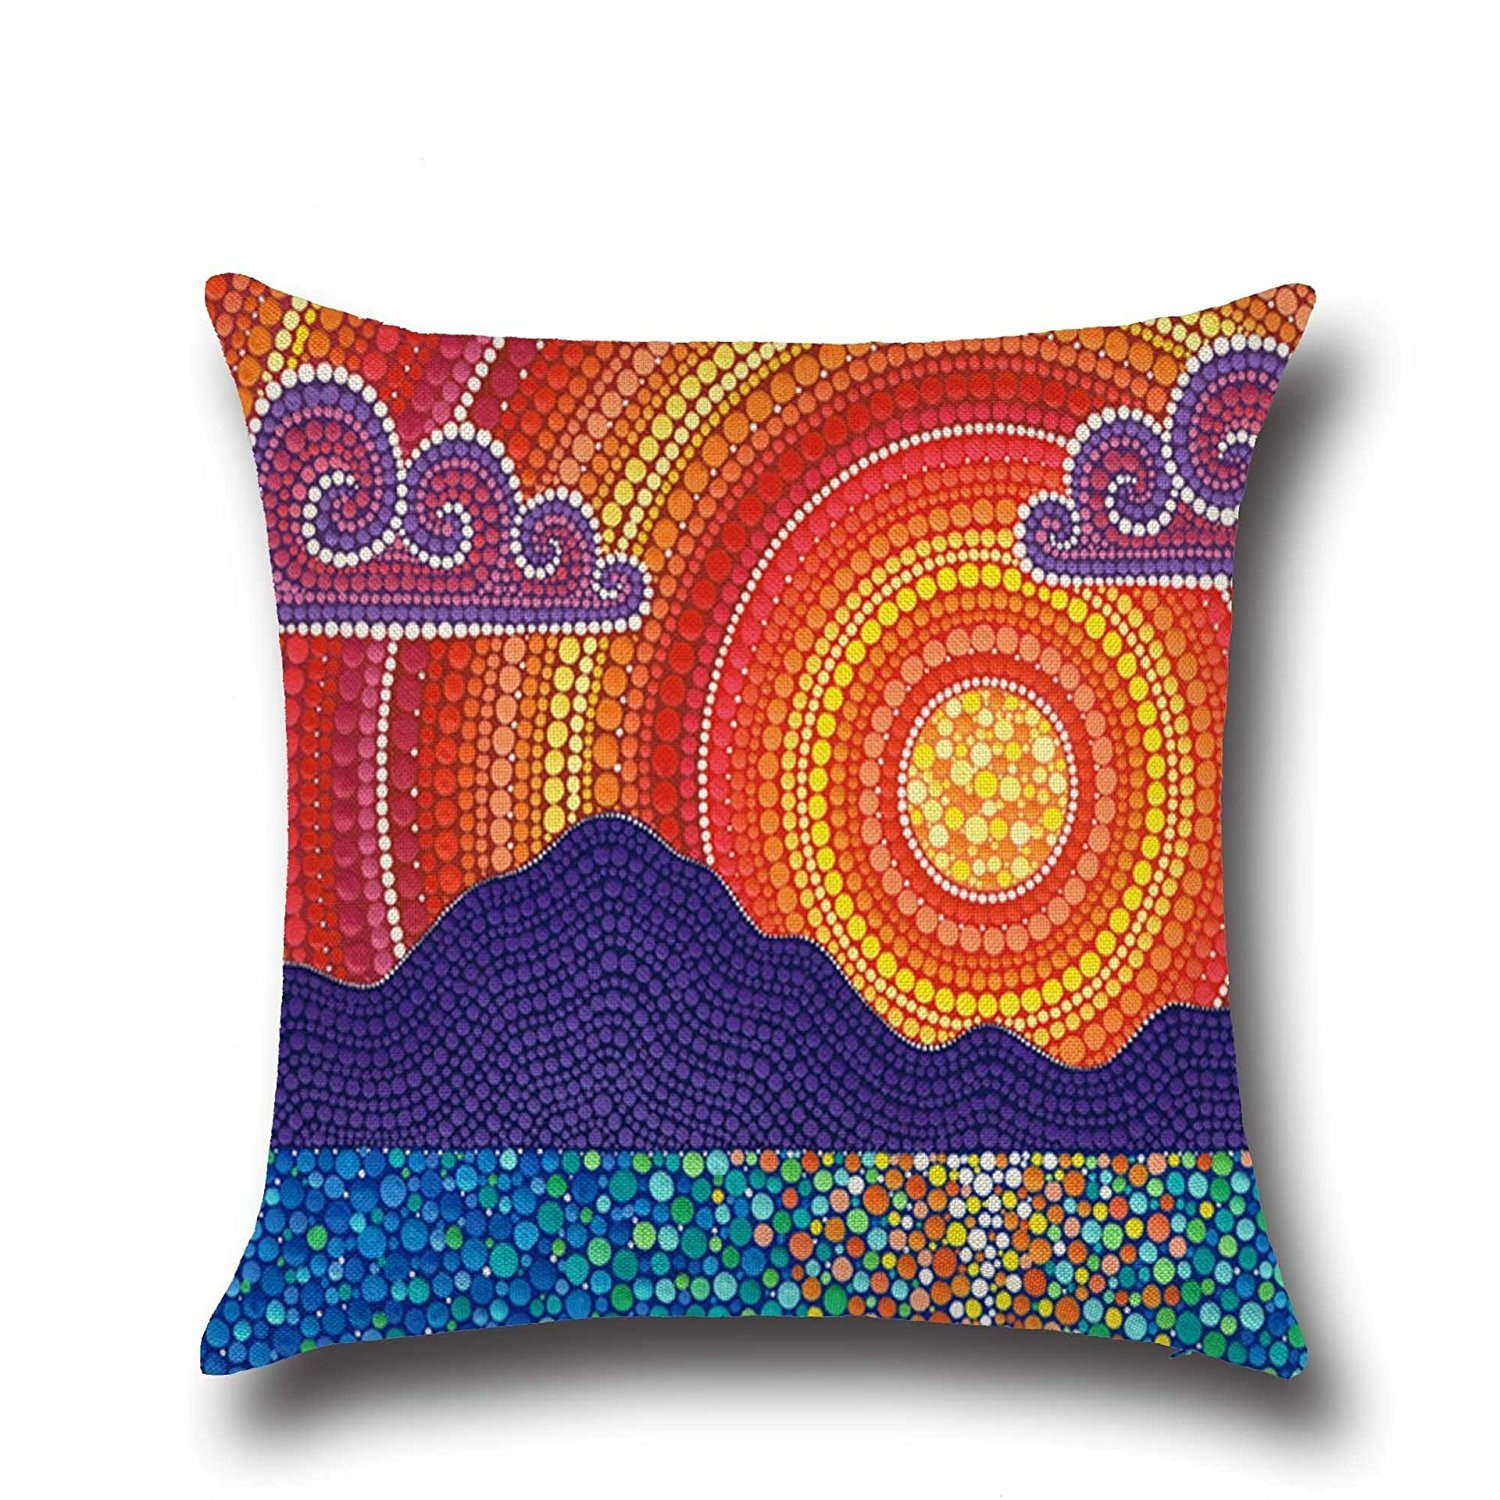 HOMEE Stylish and Fantastic Sunset Shanshui Flower-Pattern Cambodia and Thailand India Southeast Asia Style ,4545Cm,01 Pillow,01,4545cm